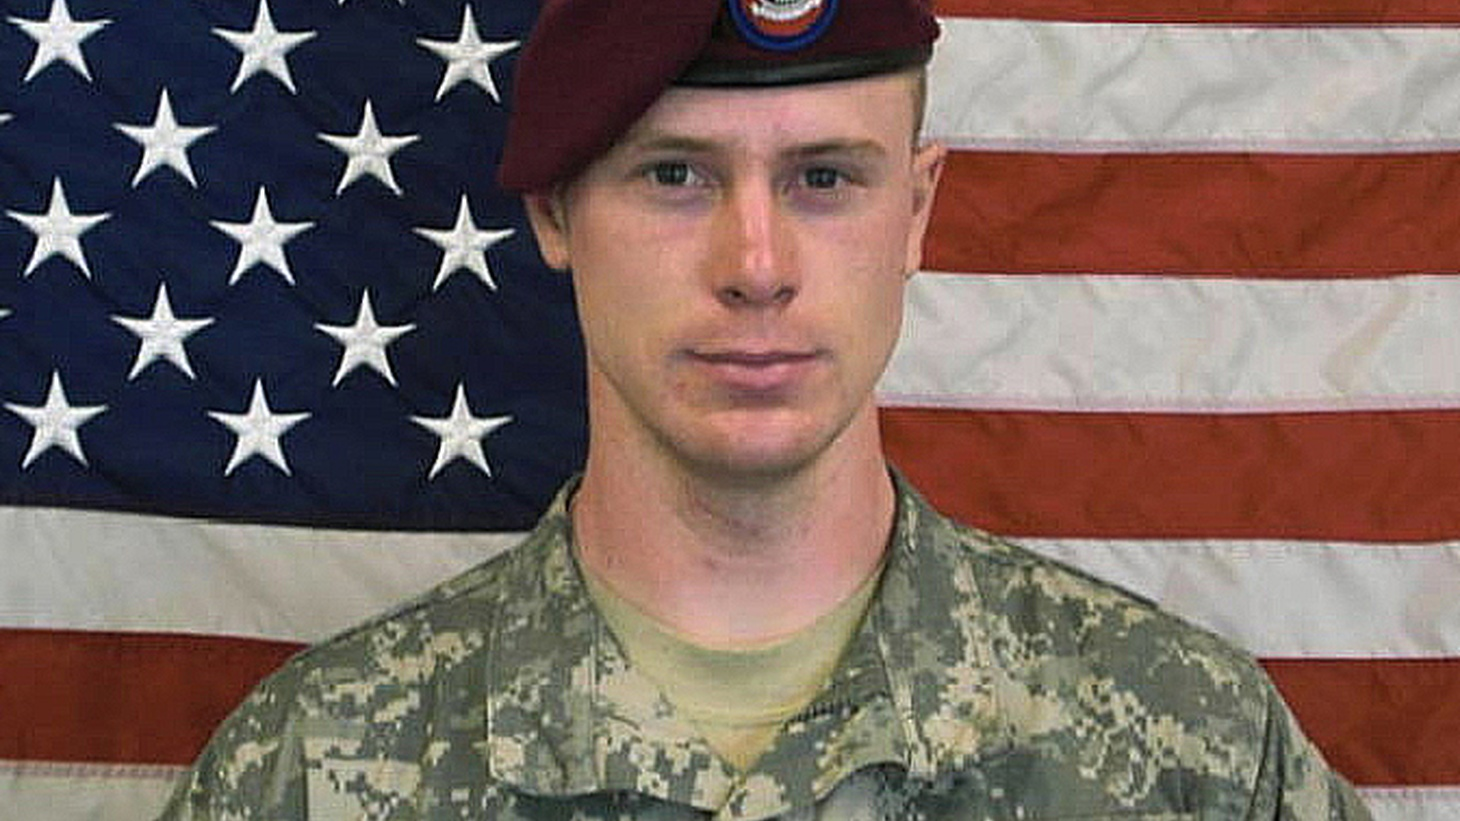 The White House plays defense upon Sergeant Bowe Bergdahl's return, California counties refuse ICE holds, Joanna Rakoff on Salinger and Syrian elections.